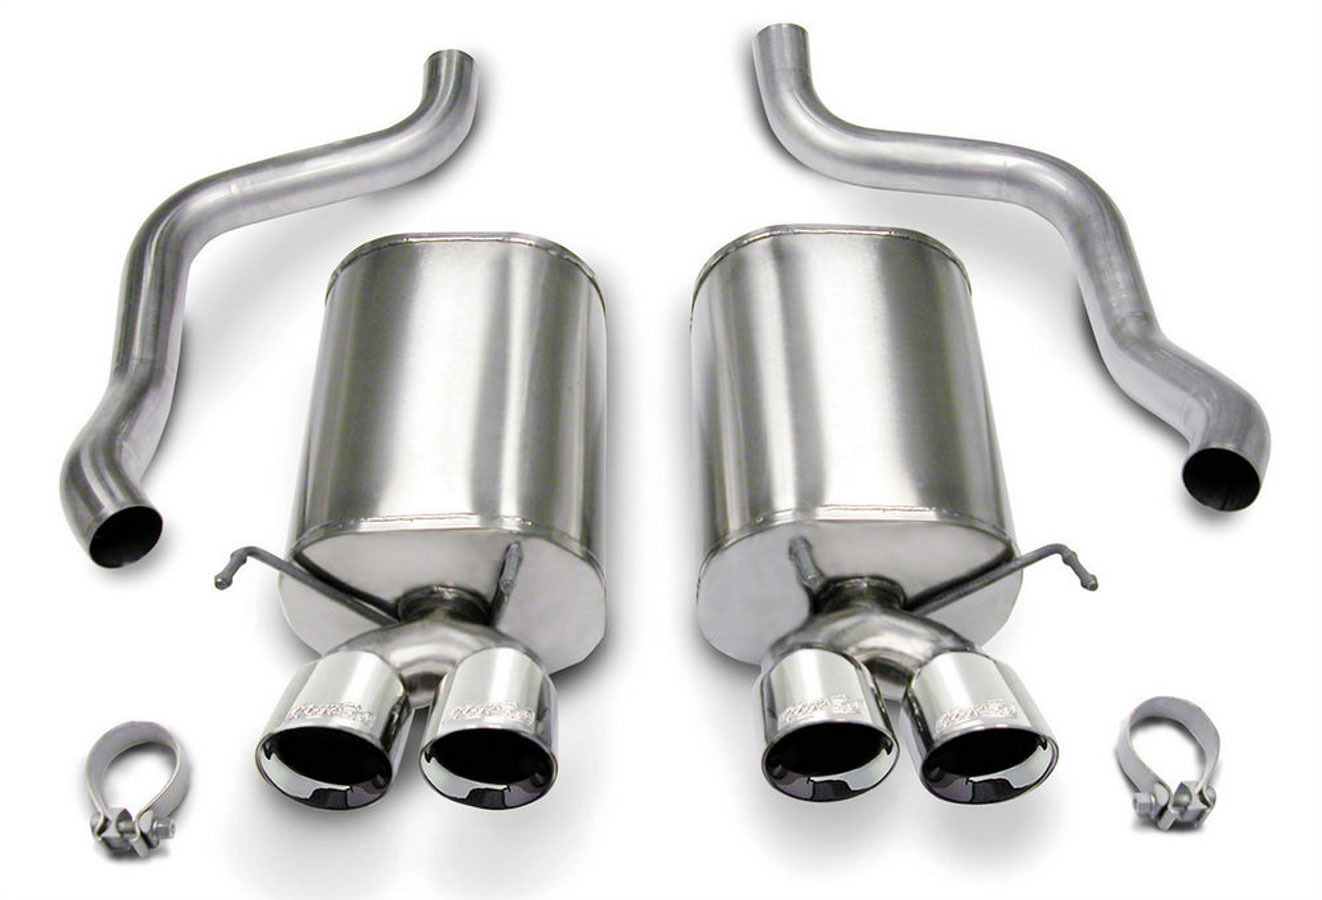 05-08 Corvette 6.0/6.2L Axle Back Exhaust System